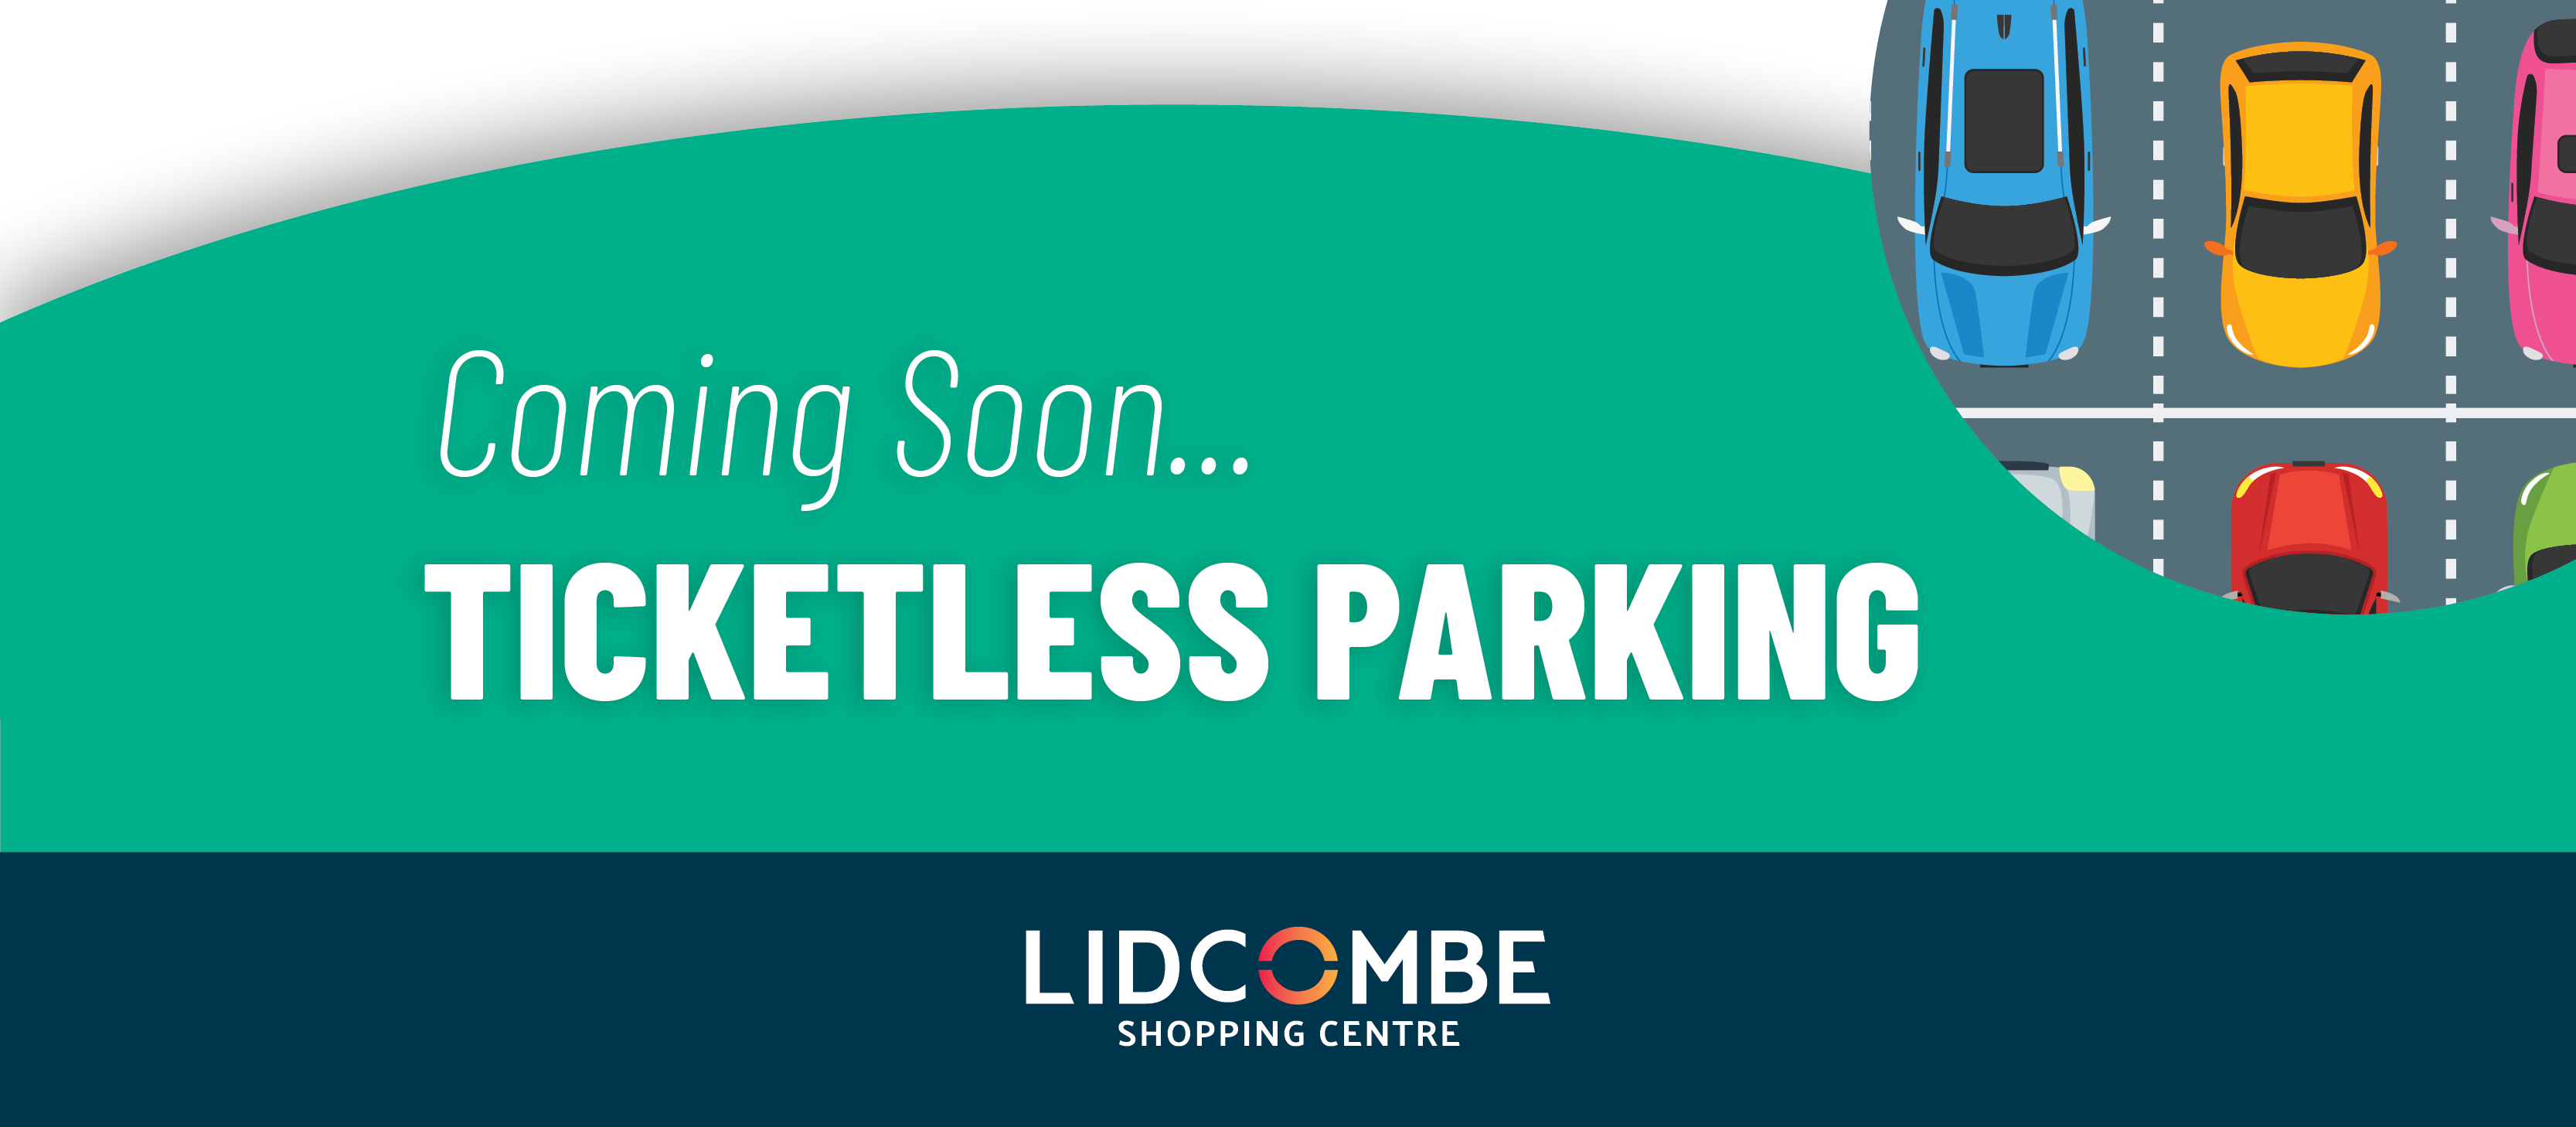 Lidcombe Shopping Centre_Introducing Ticketless Parking